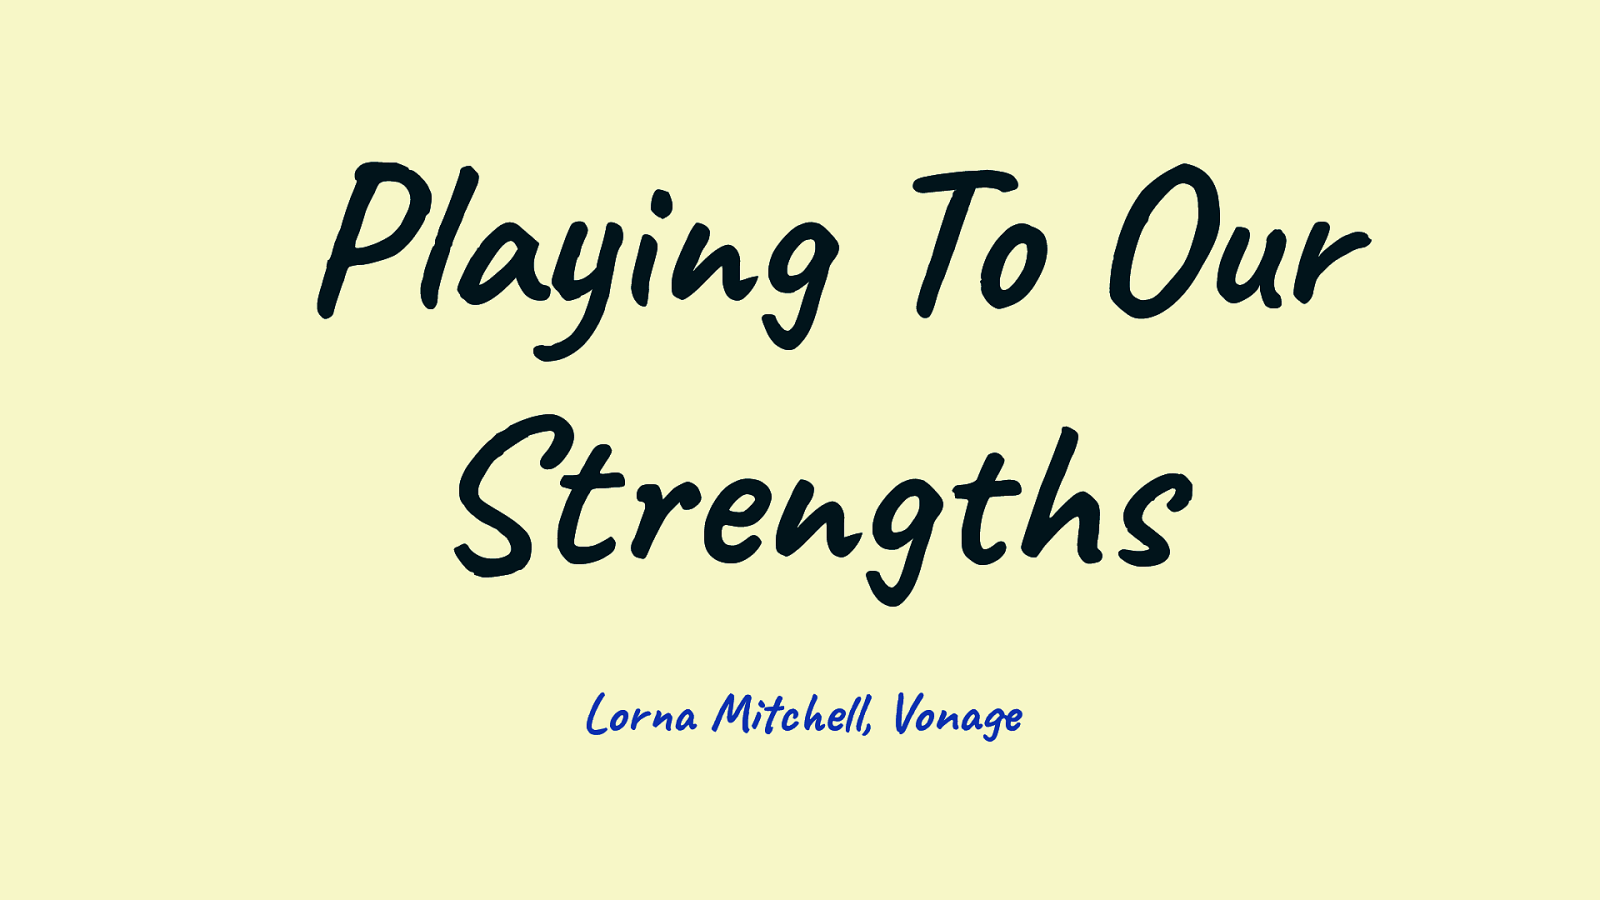 Keynote: Playing to our Strengths